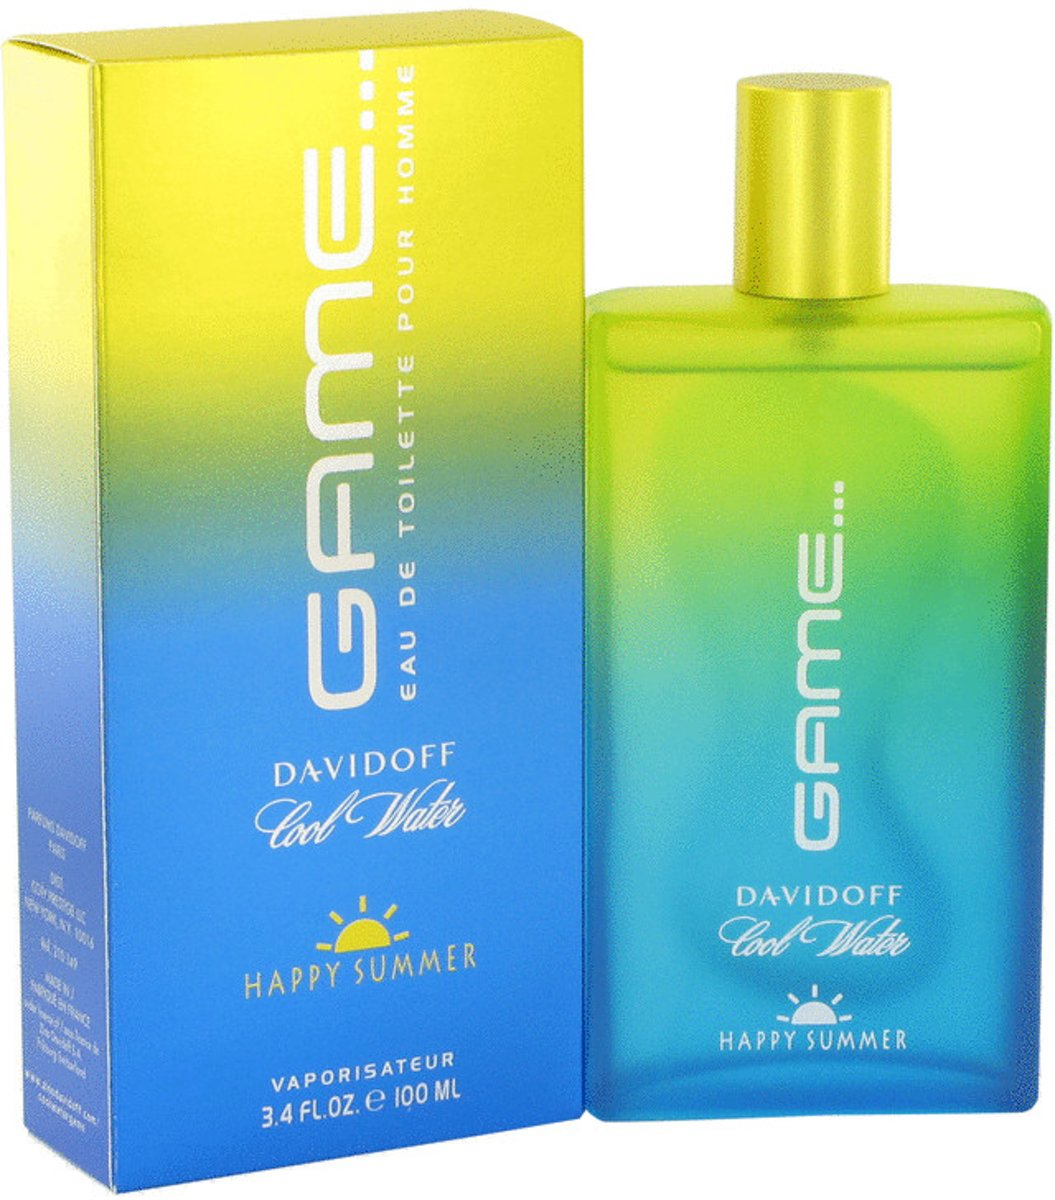 Davidoff Cool Water Game Happy Summer - Eau de toilette spray - 100 ml